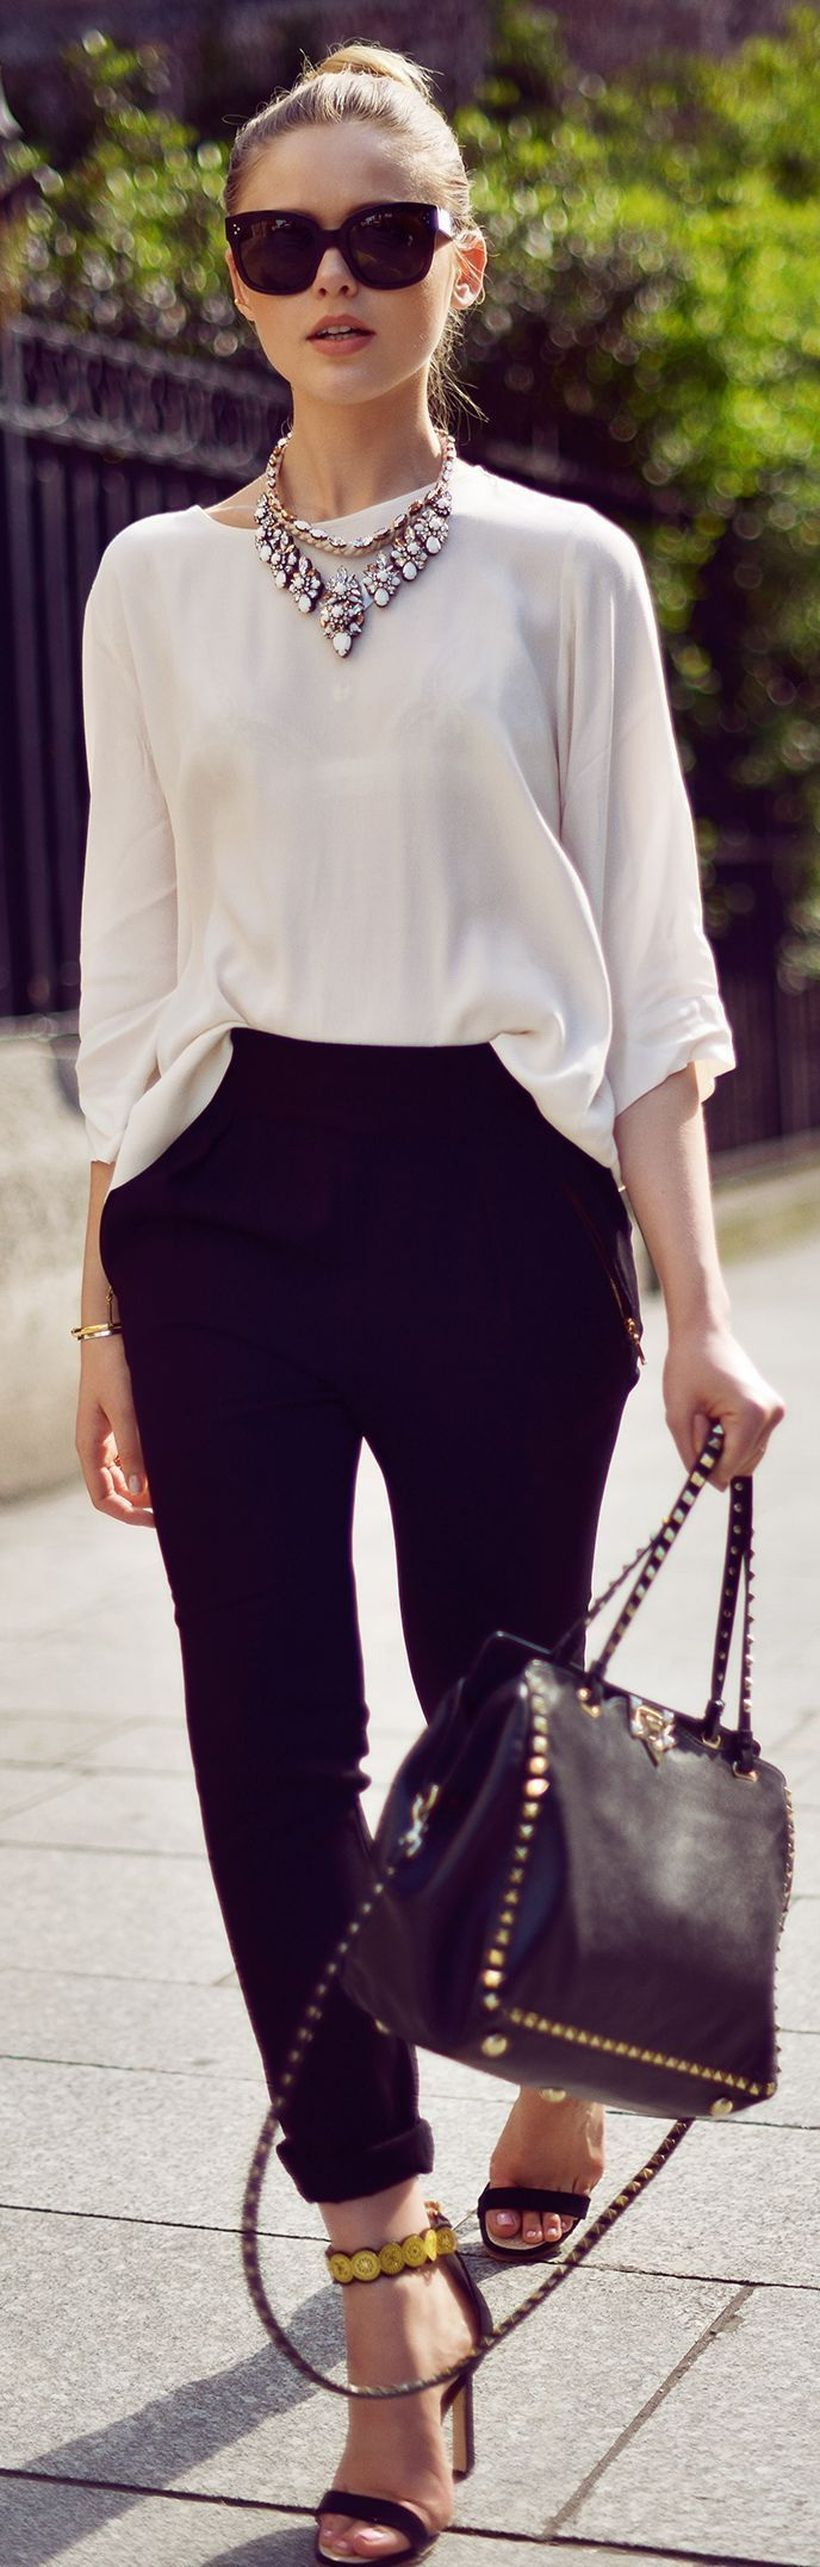 A-perfect-long-sleeve-blouse.-